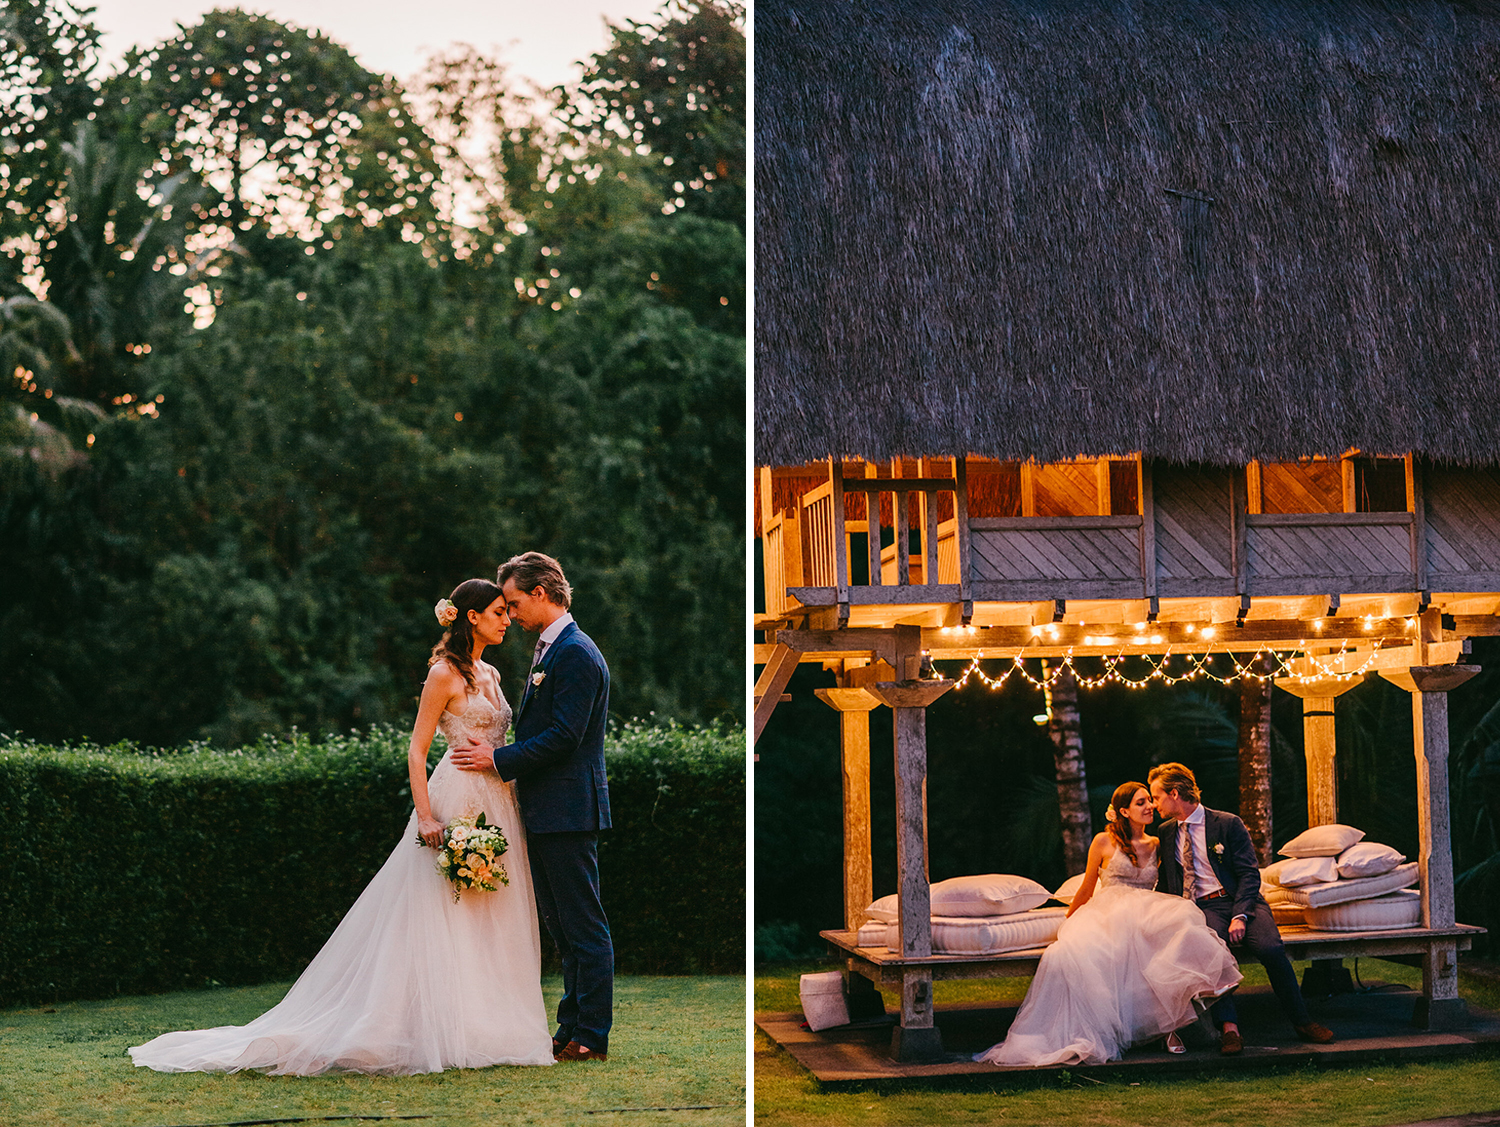 bali-wedding-destination-wedding-in-bali-bali-photographer-the-sanctuary-villa-profesional-bali-wedding-photographer-diktatphotography-clement-armine-wedding-72